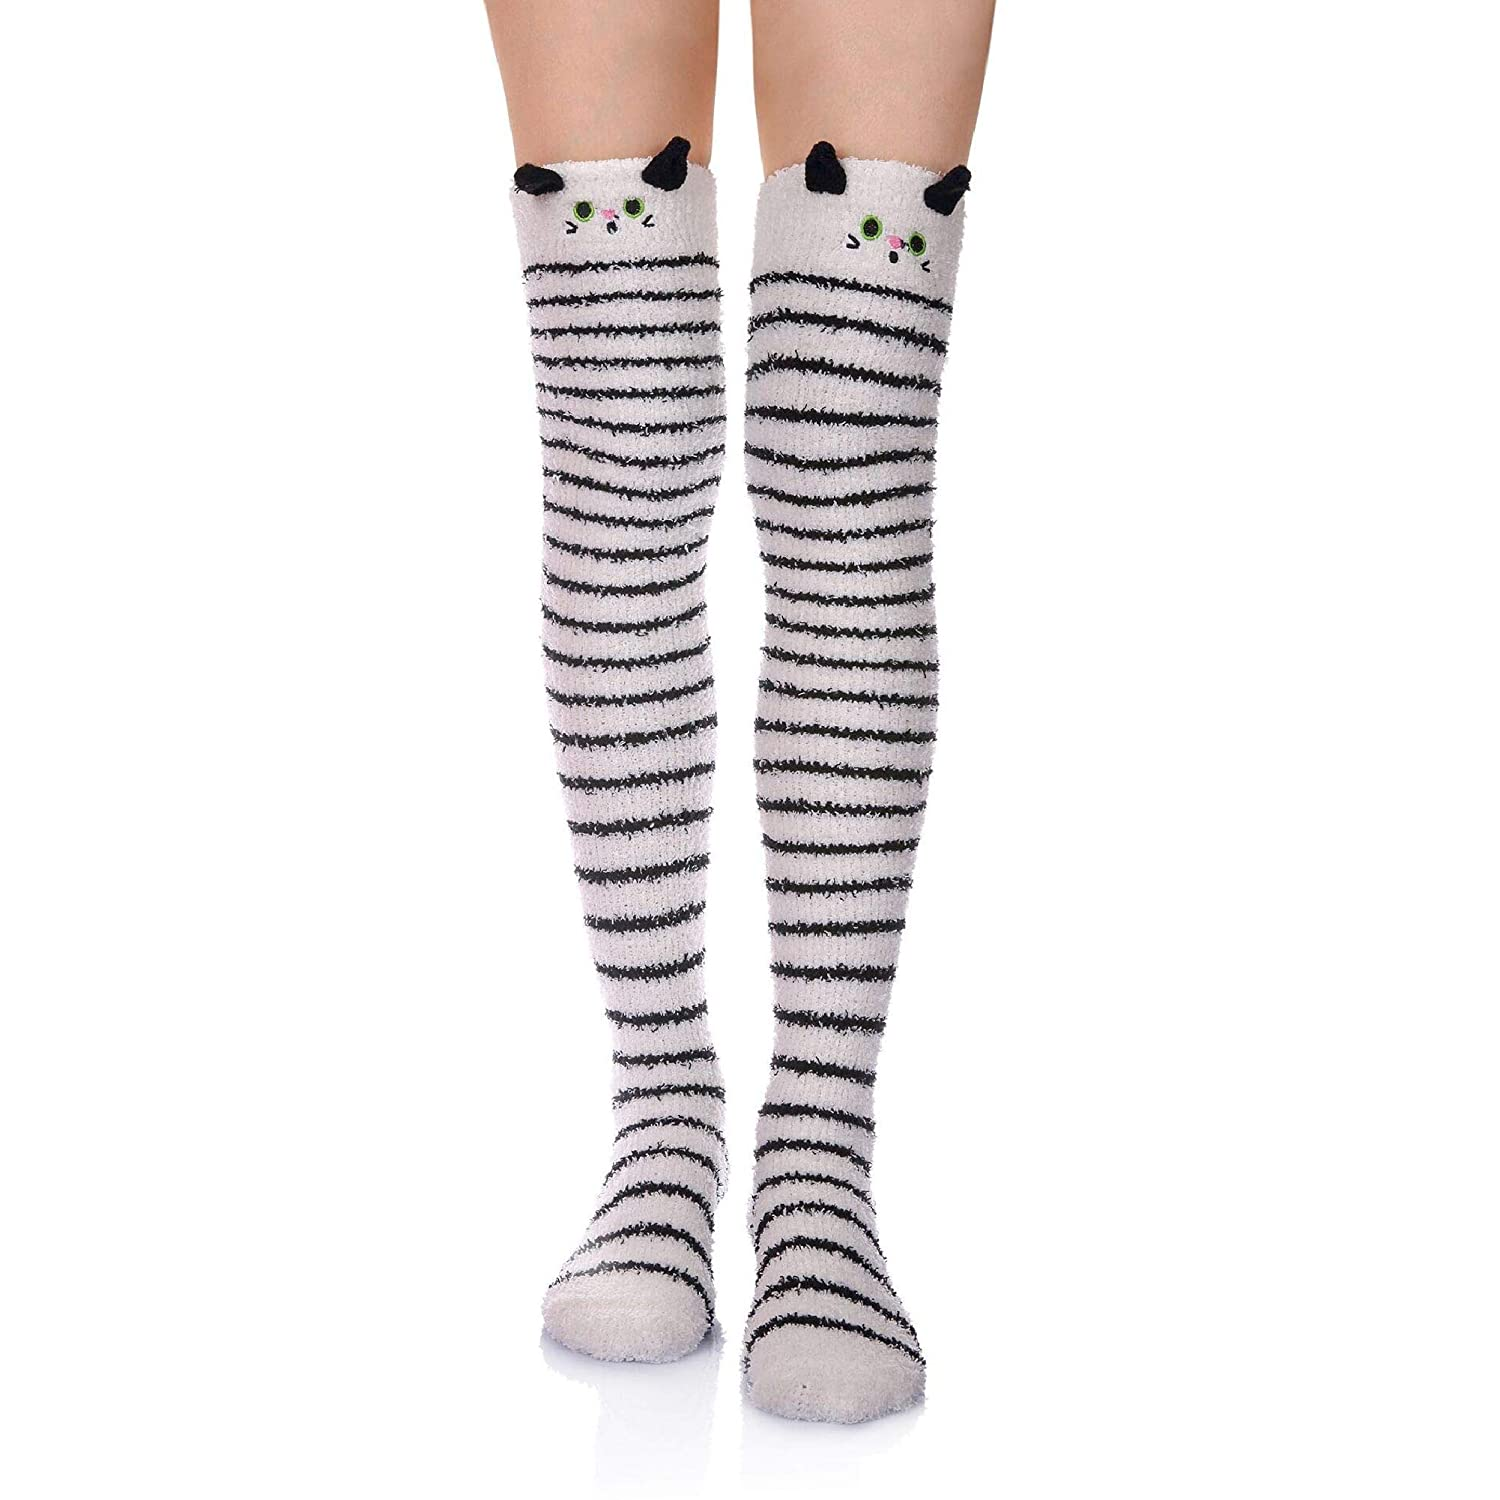 1 Pair Stripe Cat Wander G Womens Over Knee High Fuzzy Socks Cute Cartoon Thigh High Stockings Warm Stripe Leg Warmers